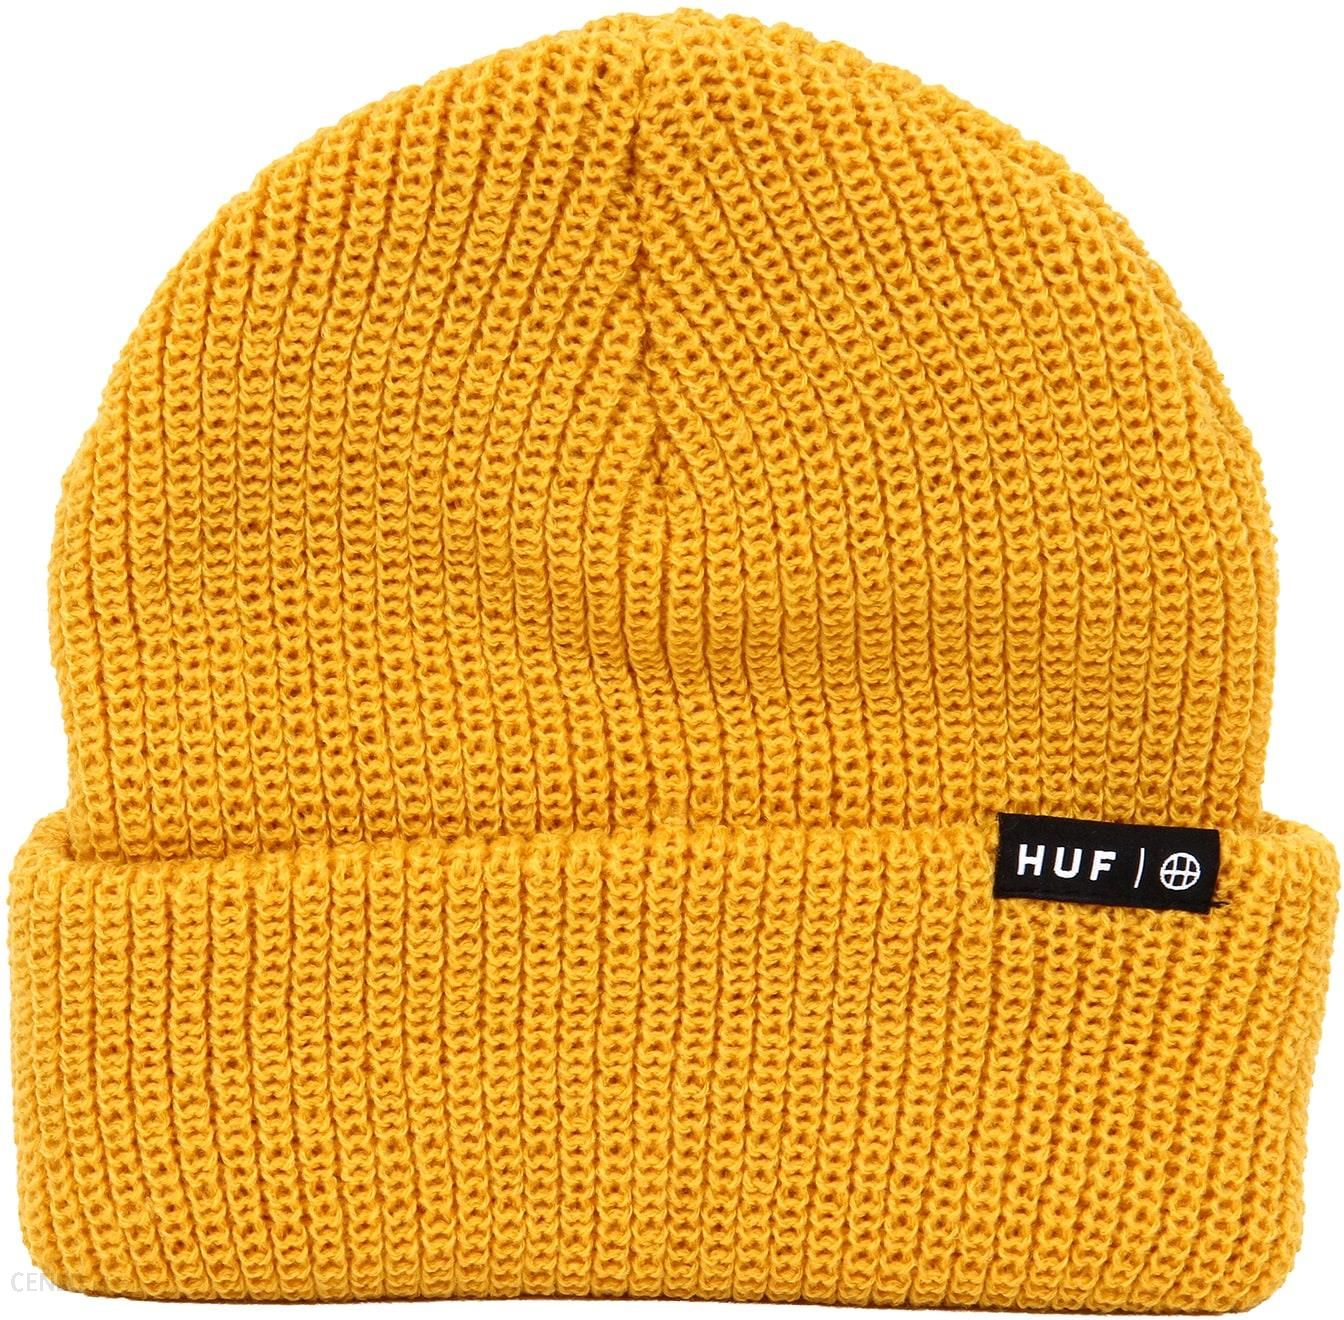 88fe59cfa67 Guess Huf Usual Beanie - Mineral Yellow - zdjęcie 1